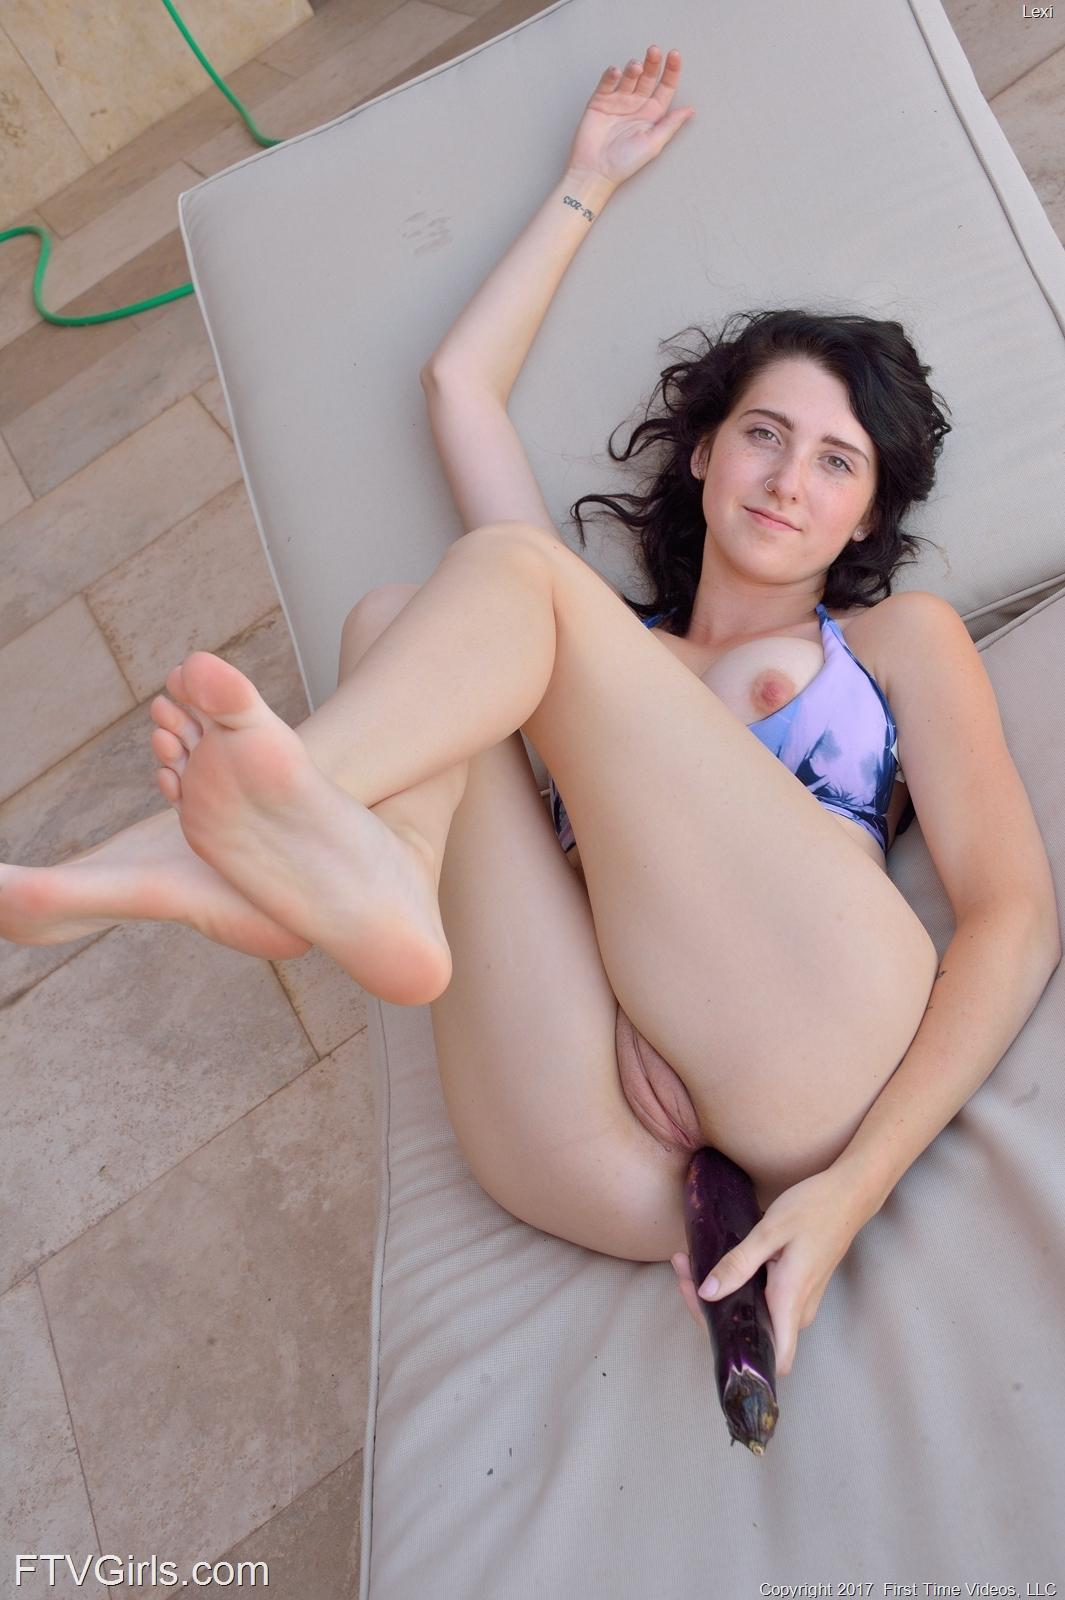 play of joy and lust for 18 years anal curious girl #6